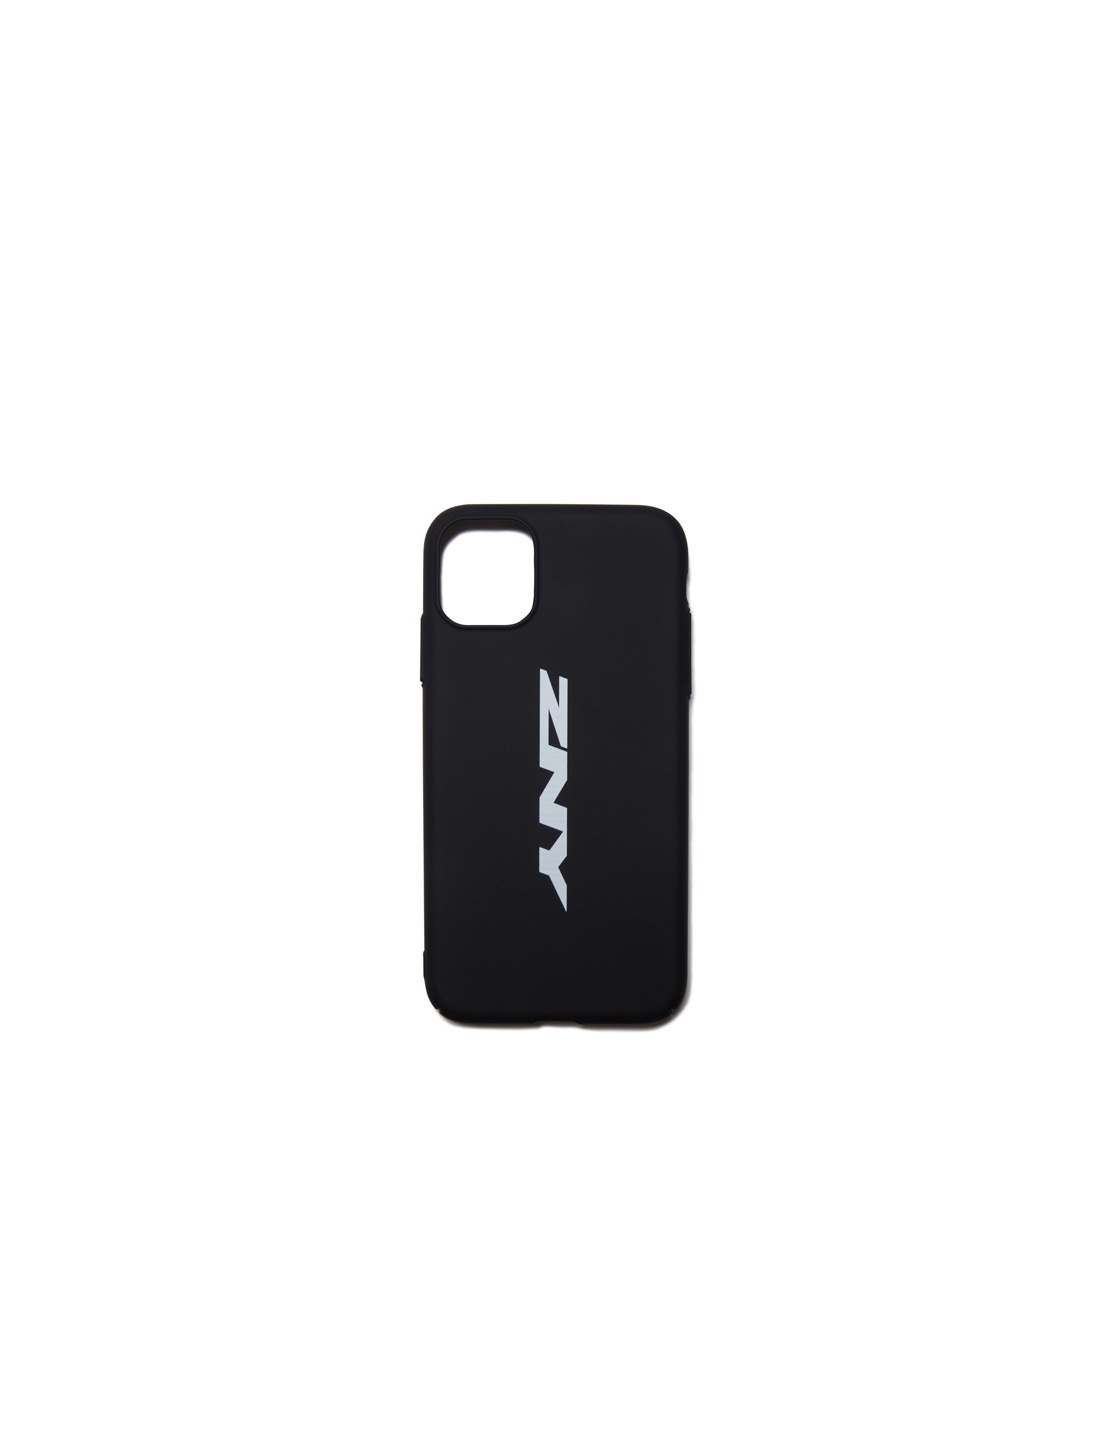 ZNY LOGO iPhone Case